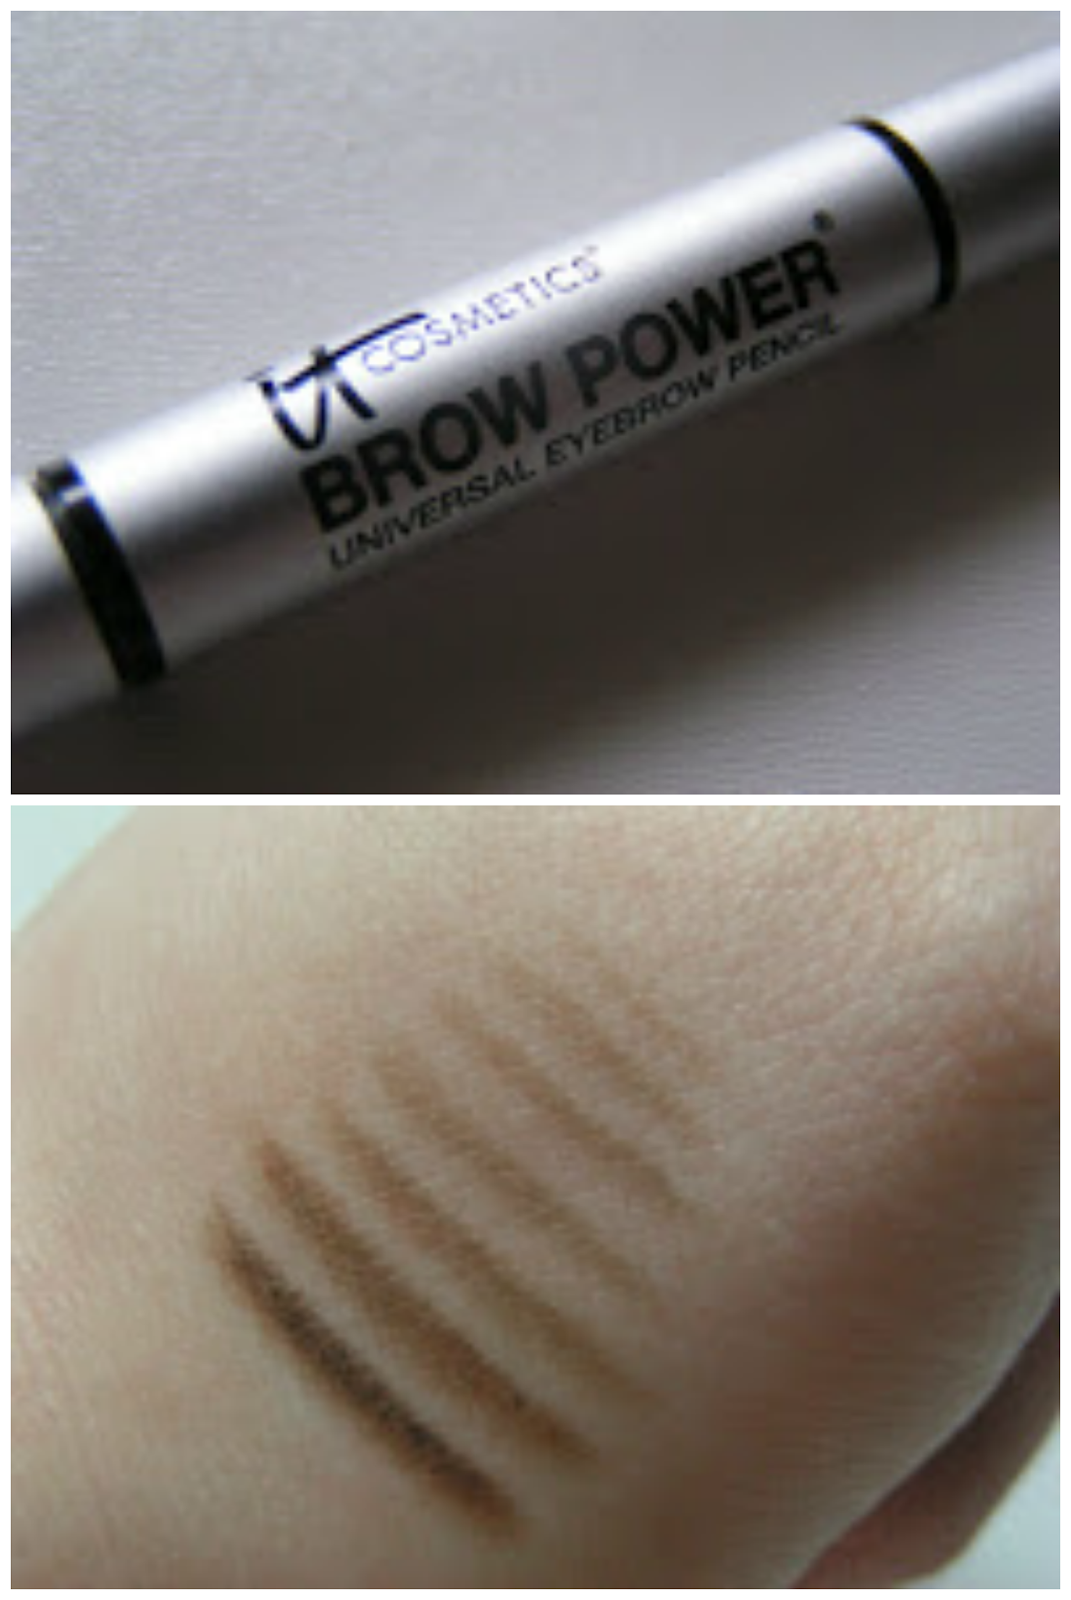 Watching For Pigs On The Wing It Cosmetics Brow Power Review Demo